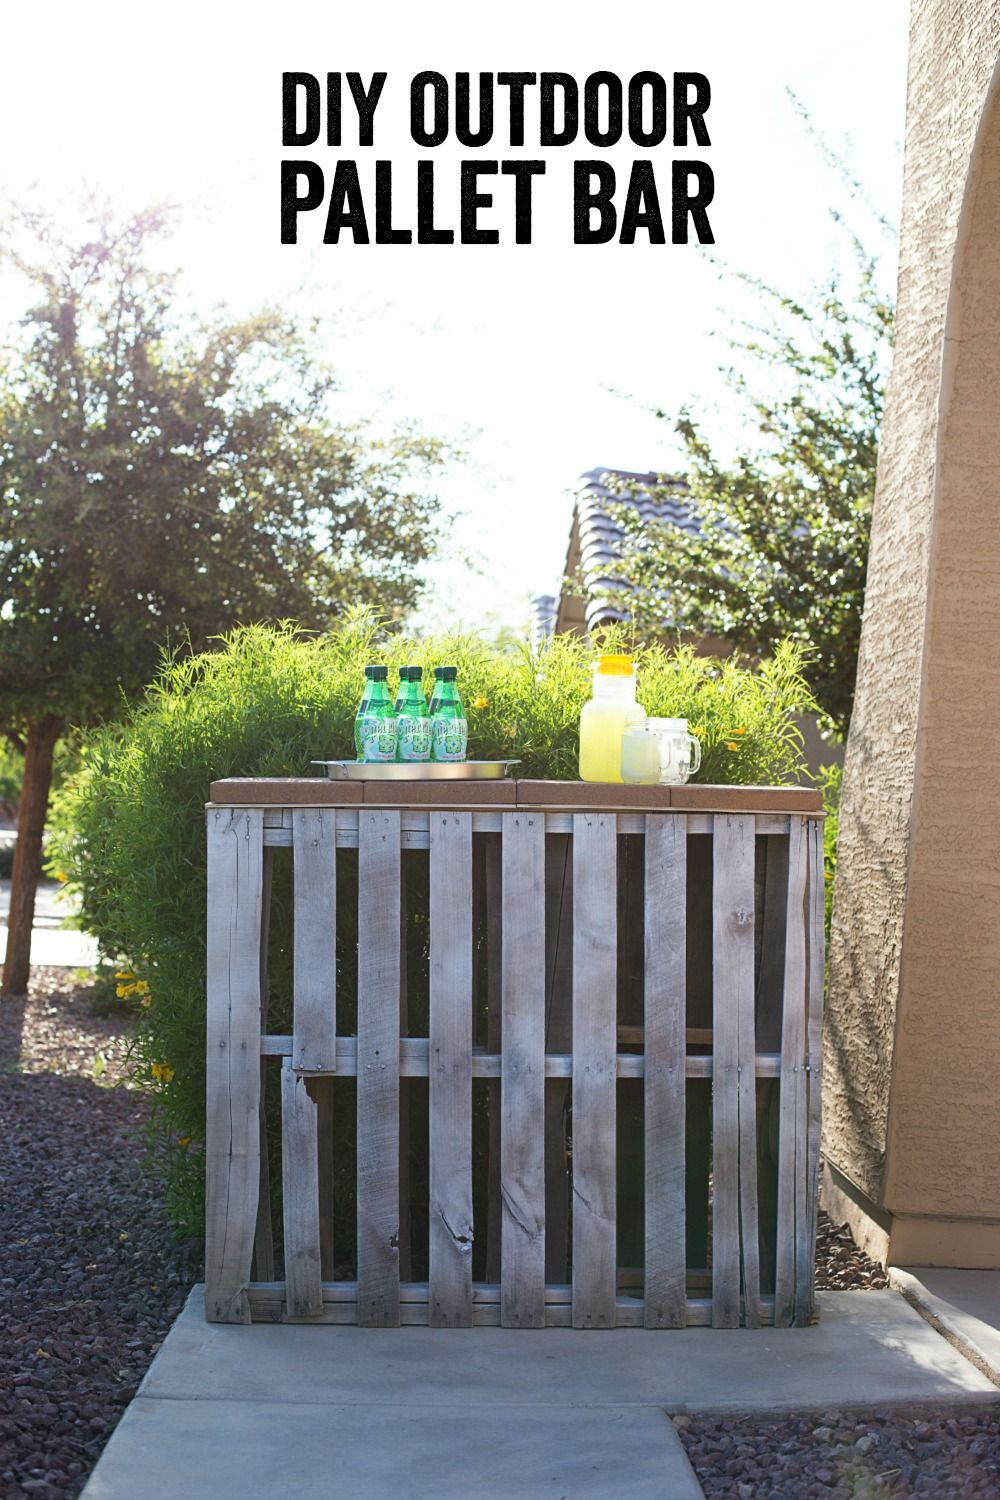 This outdoor palette bar project from @anightowlblog  will have your backyard or patio ready for summer in no time!